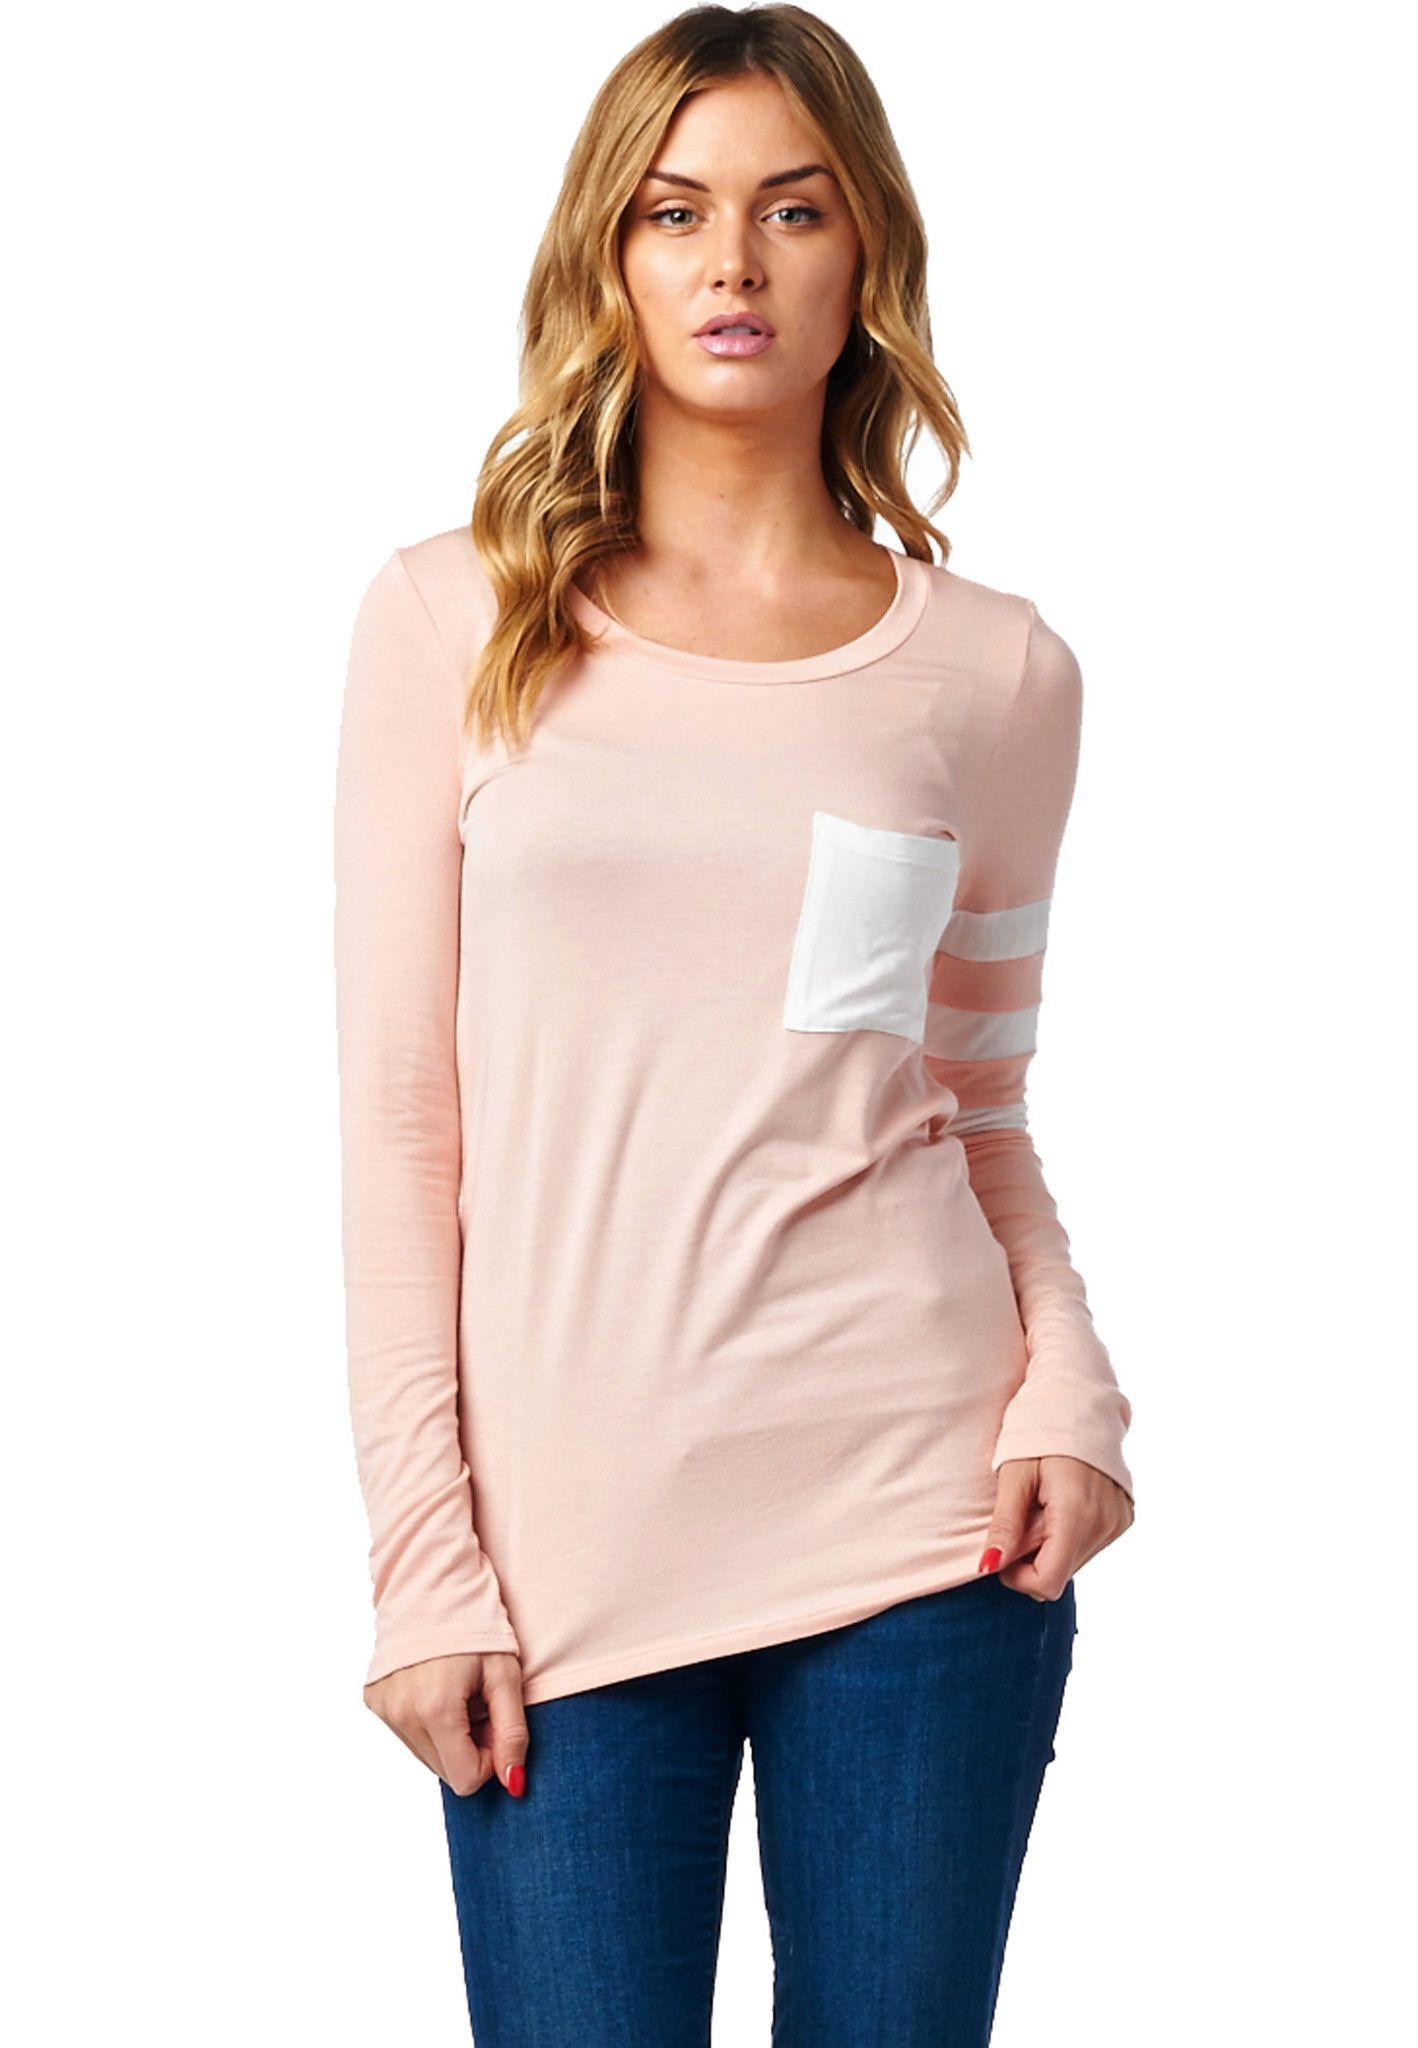 Long Sleeve Basic Top with Pocket on the front